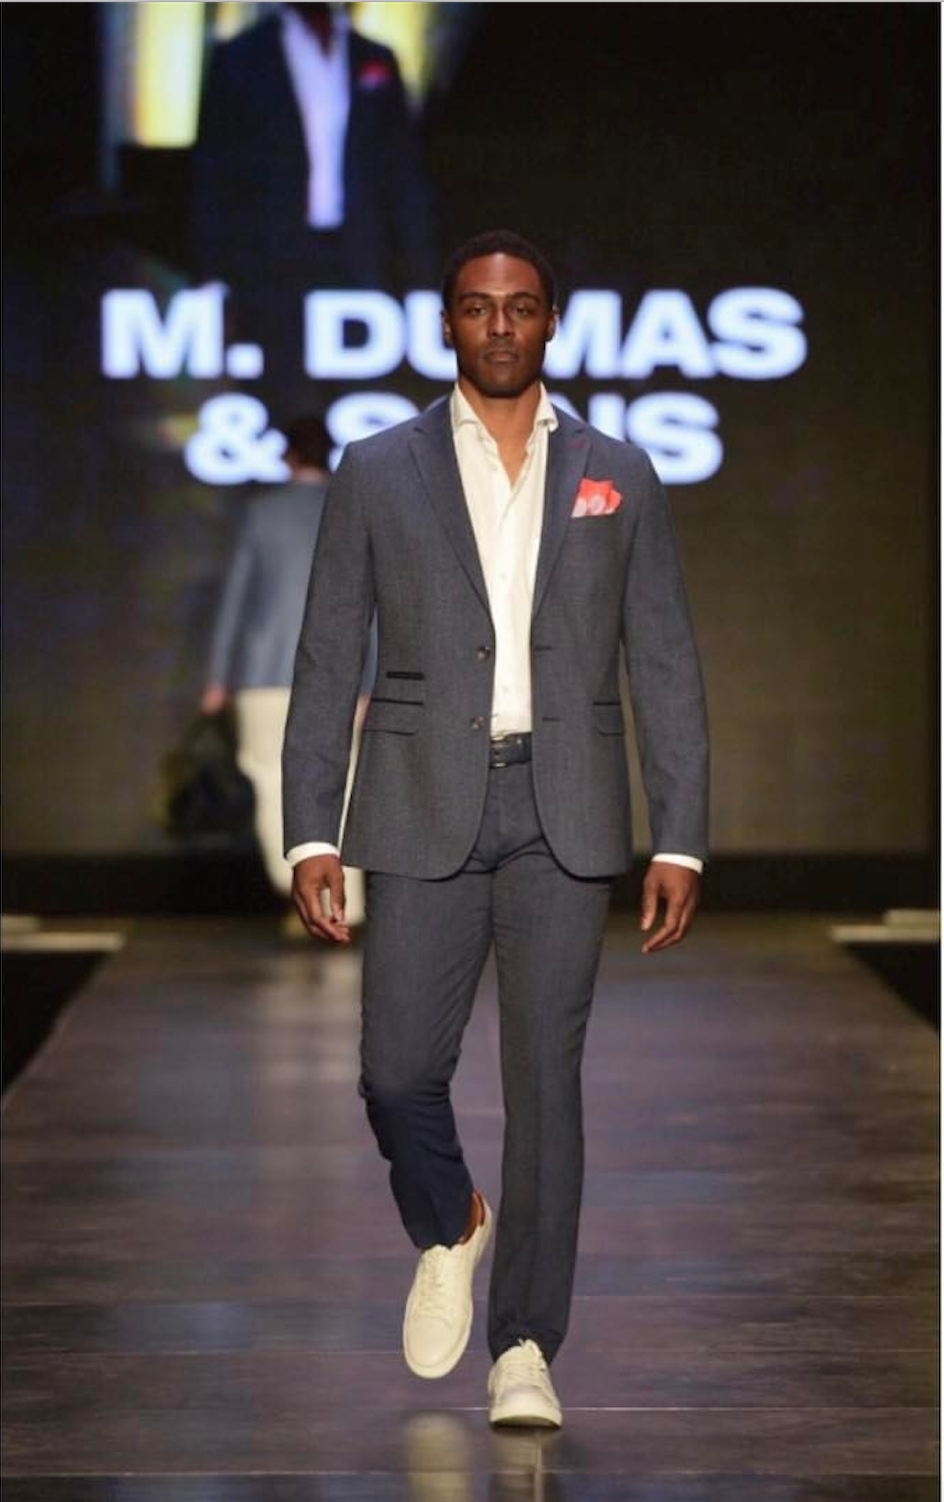 sneakers with suit m. dumas u0026 sons, charleston fashion week, sneakers and suit RQOCCRS